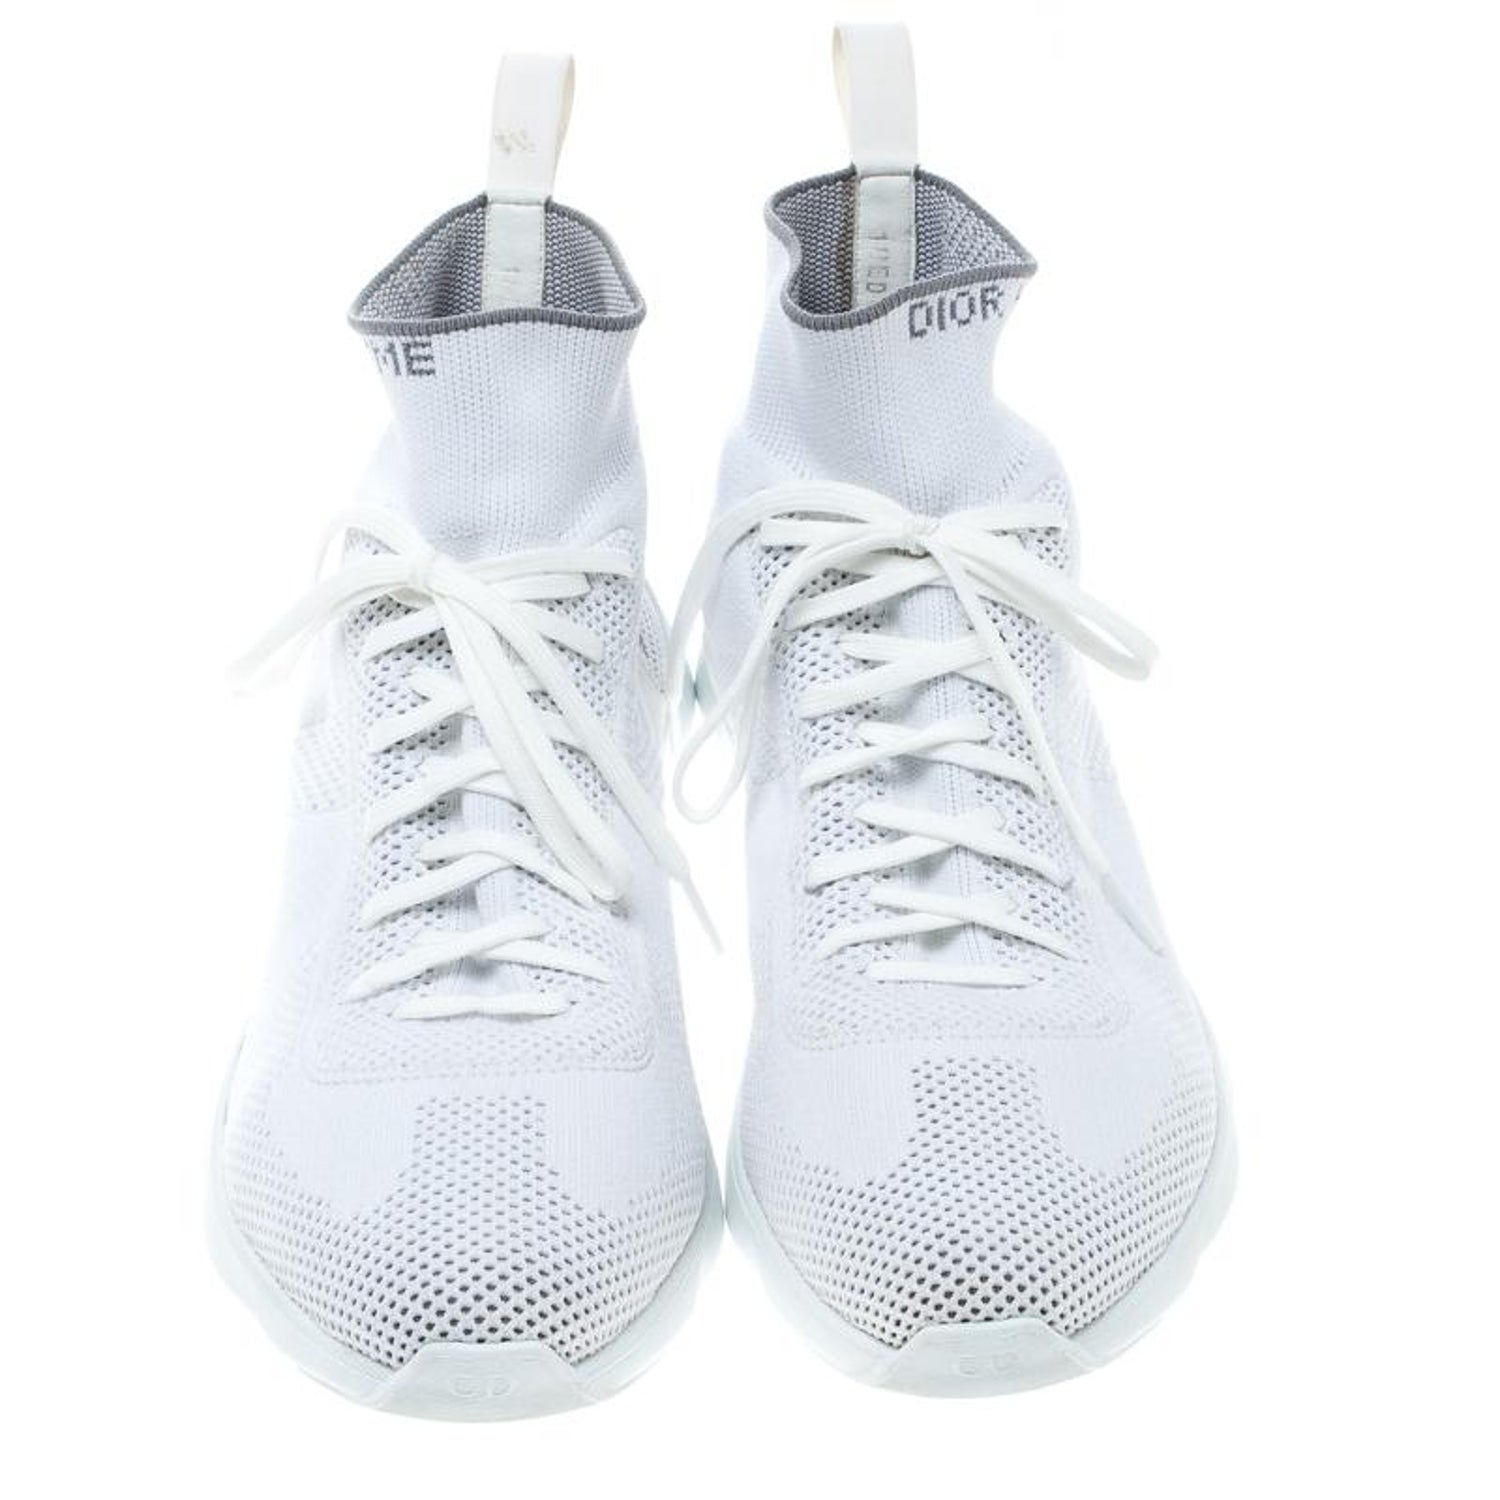 71a05dc4 Dior White/ Grey Knit B21 Socks High Top Sneakers Size 42